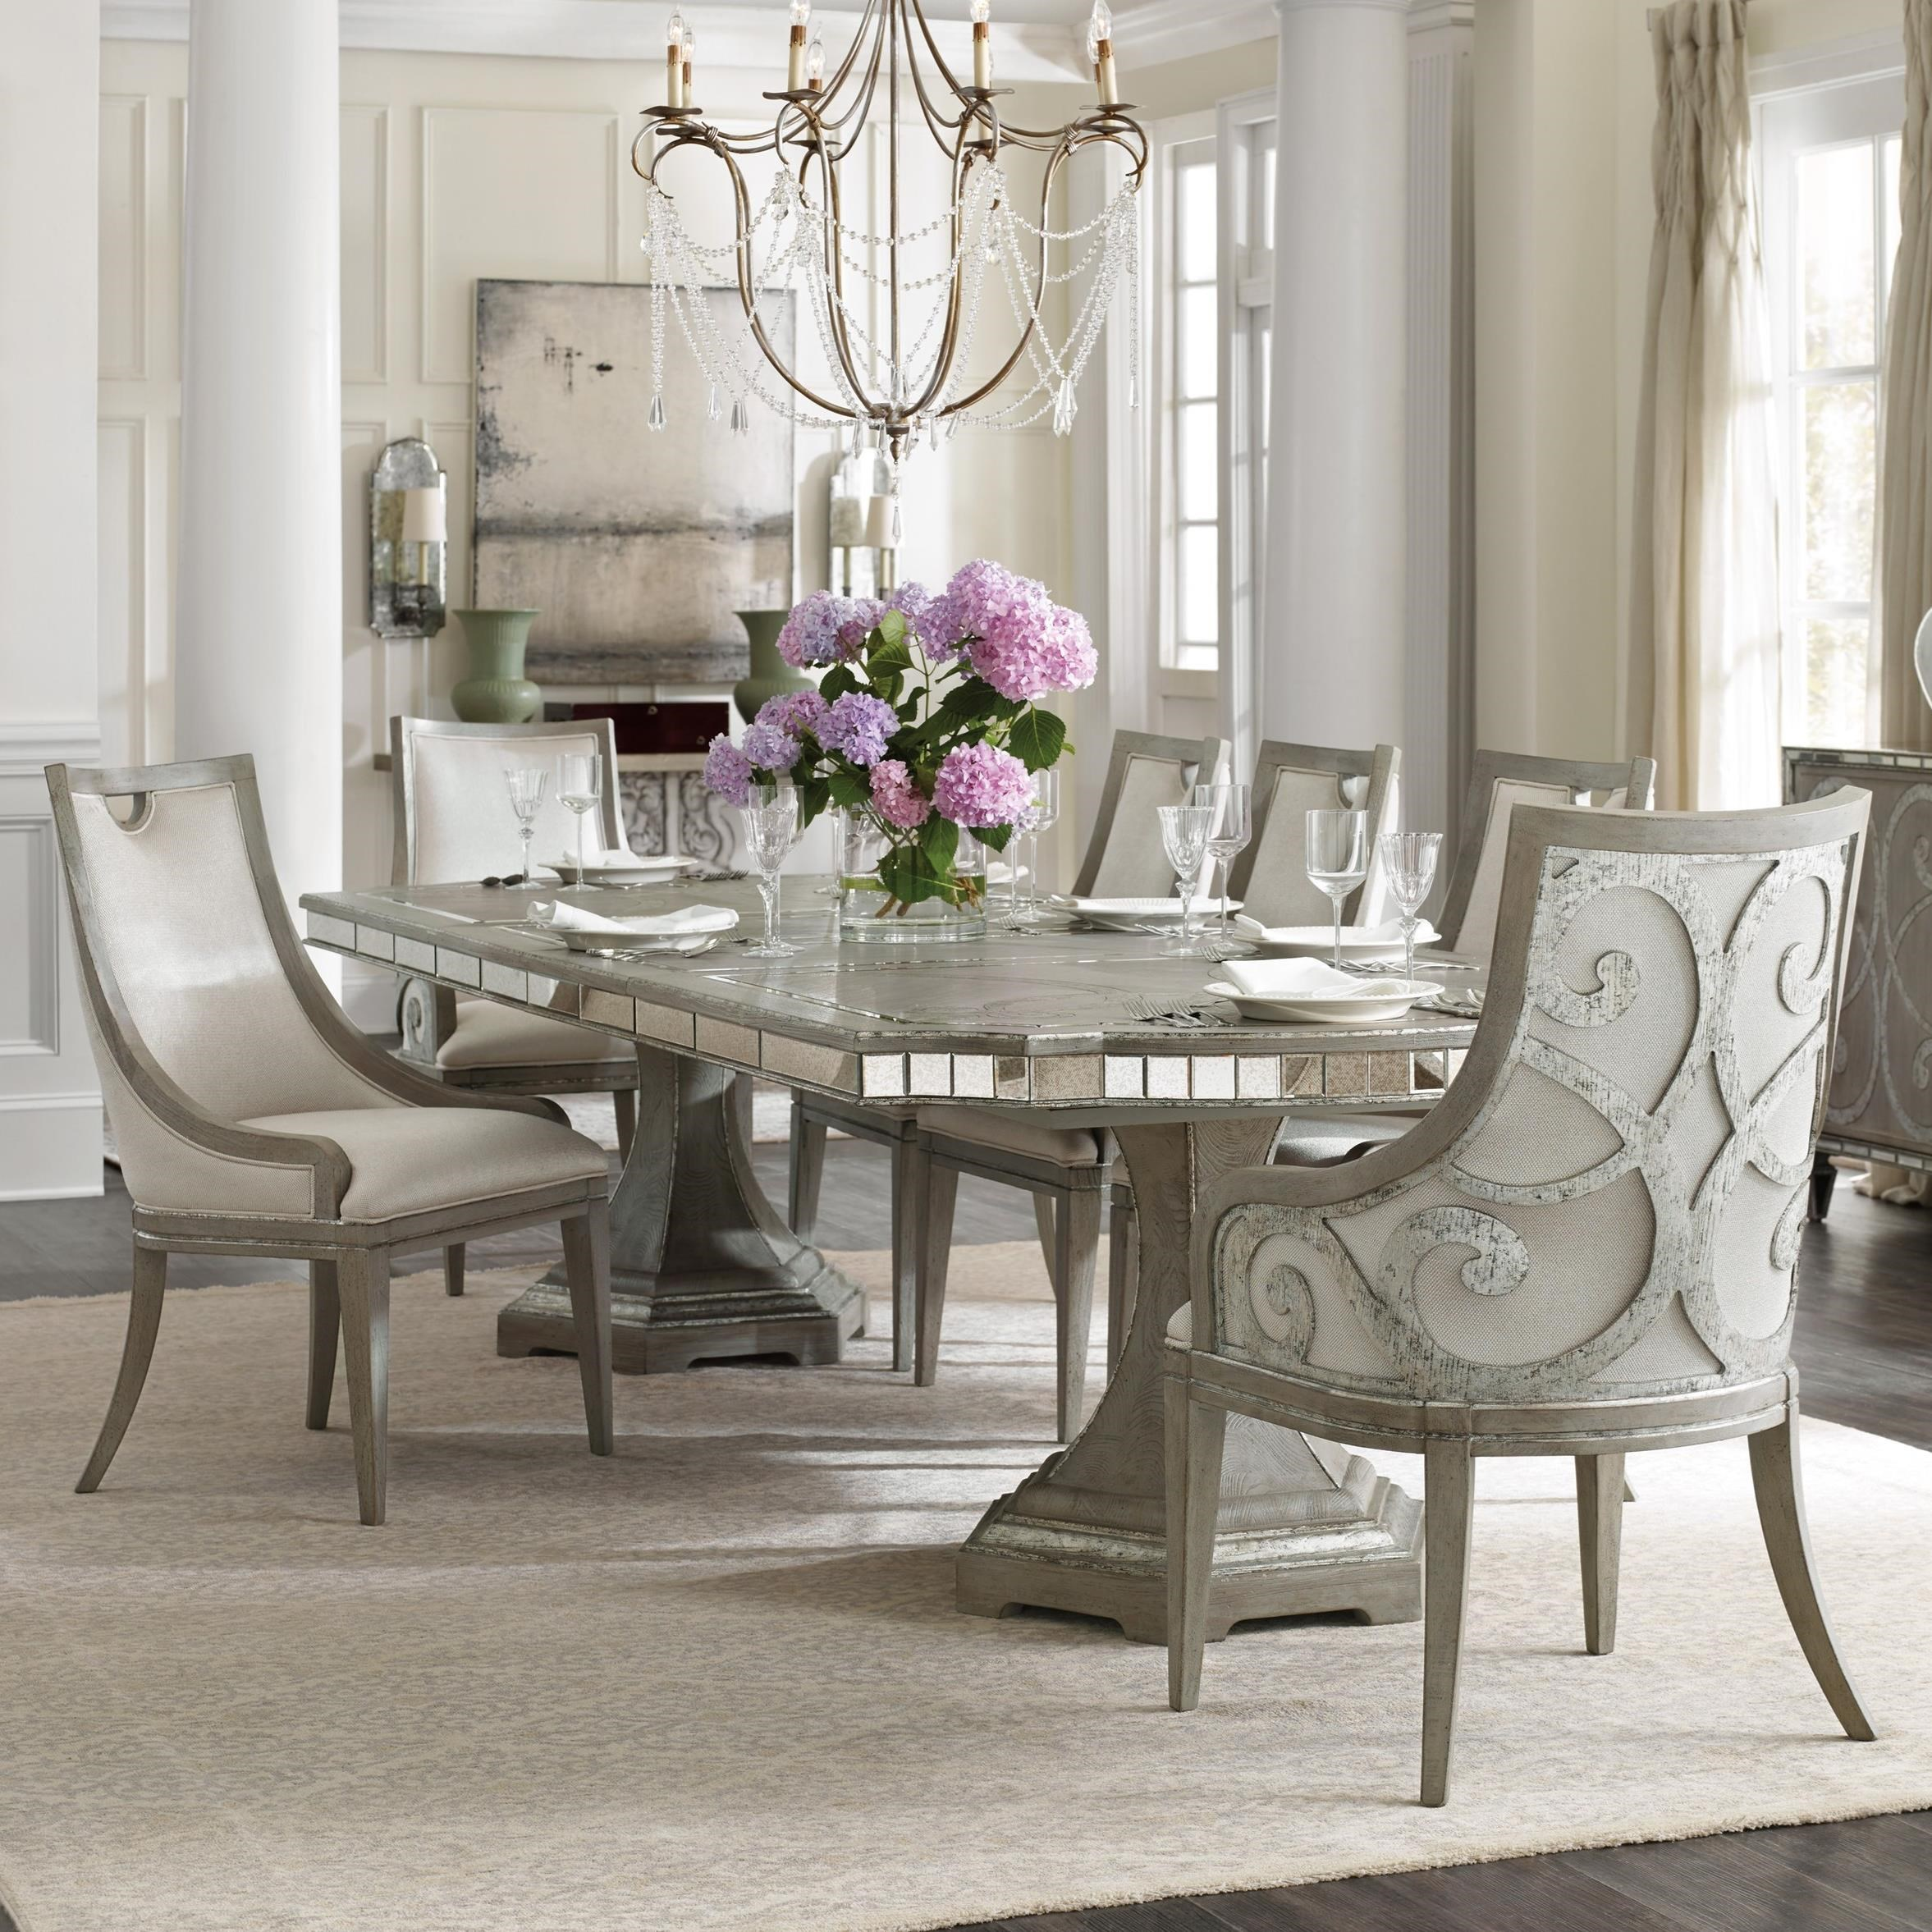 Sanctuary 7-Piece Dining Set by Hooker Furniture at Miller Waldrop Furniture and Decor